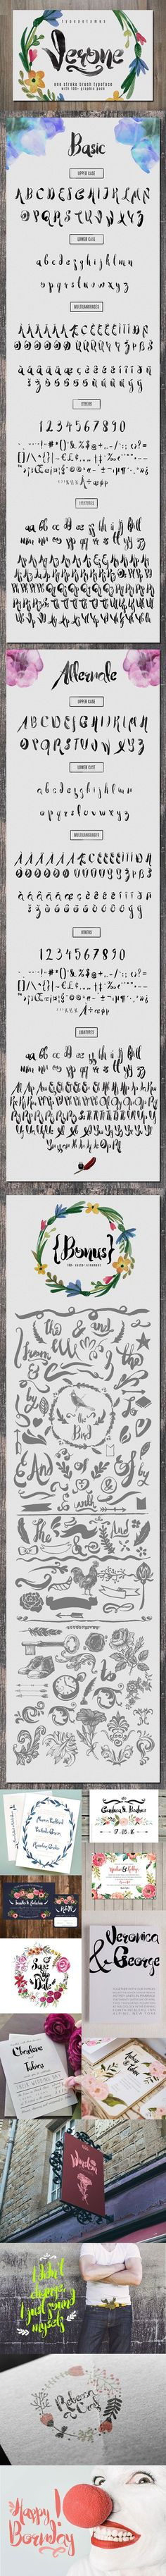 Verone Typeface Verone is a handmade typeface. Brought to give you a sweet, romantic handmade typographic style. Pretty Fonts, Cool Fonts, Romantic Fonts, Otf Font, Mac Os, Lowercase A, Your Design, Signage, Typography